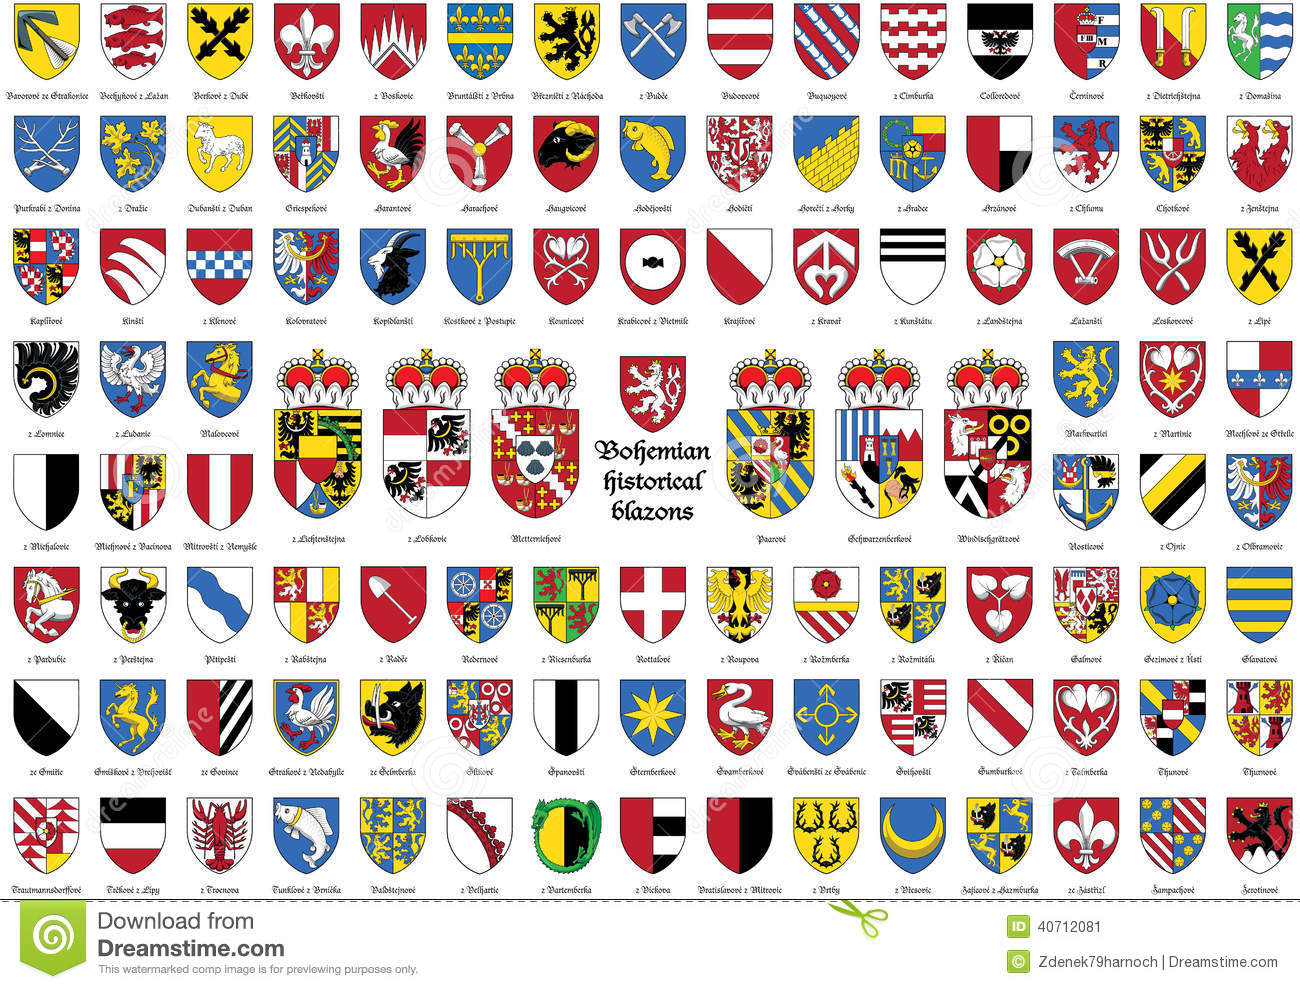 Heraldry And The Coat Of Arms